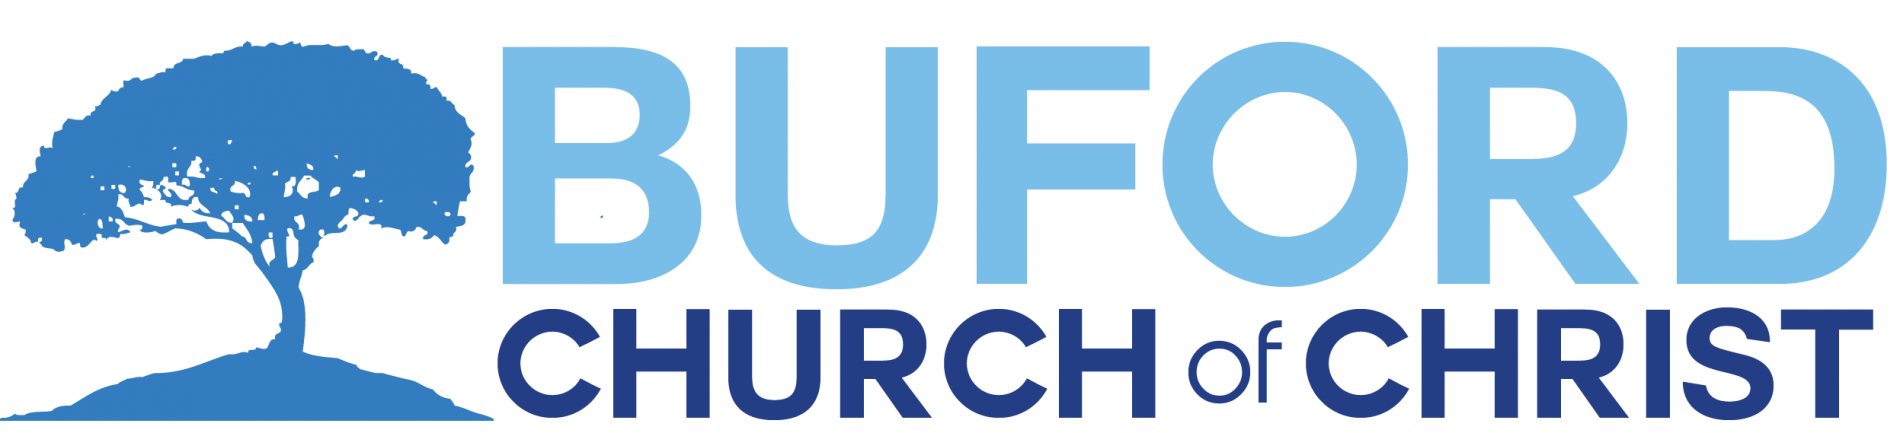 Buford Church of Christ